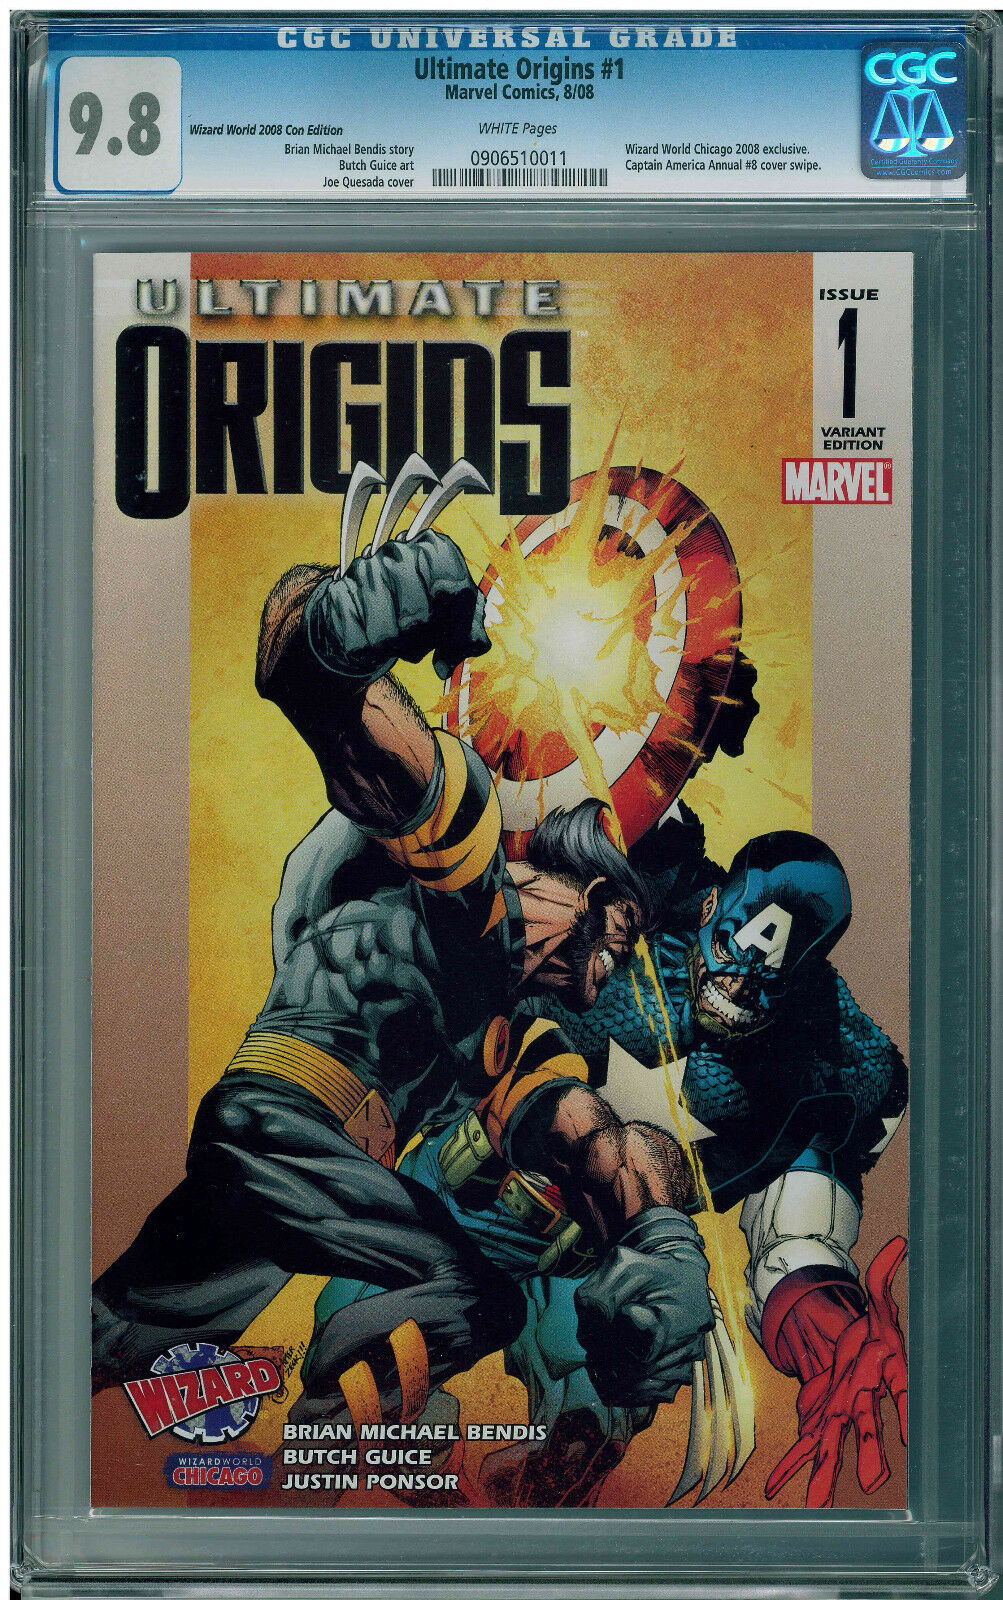 ULTIMATE ORIGINS Marvel #1 Variant Wizard World CGC 9.8